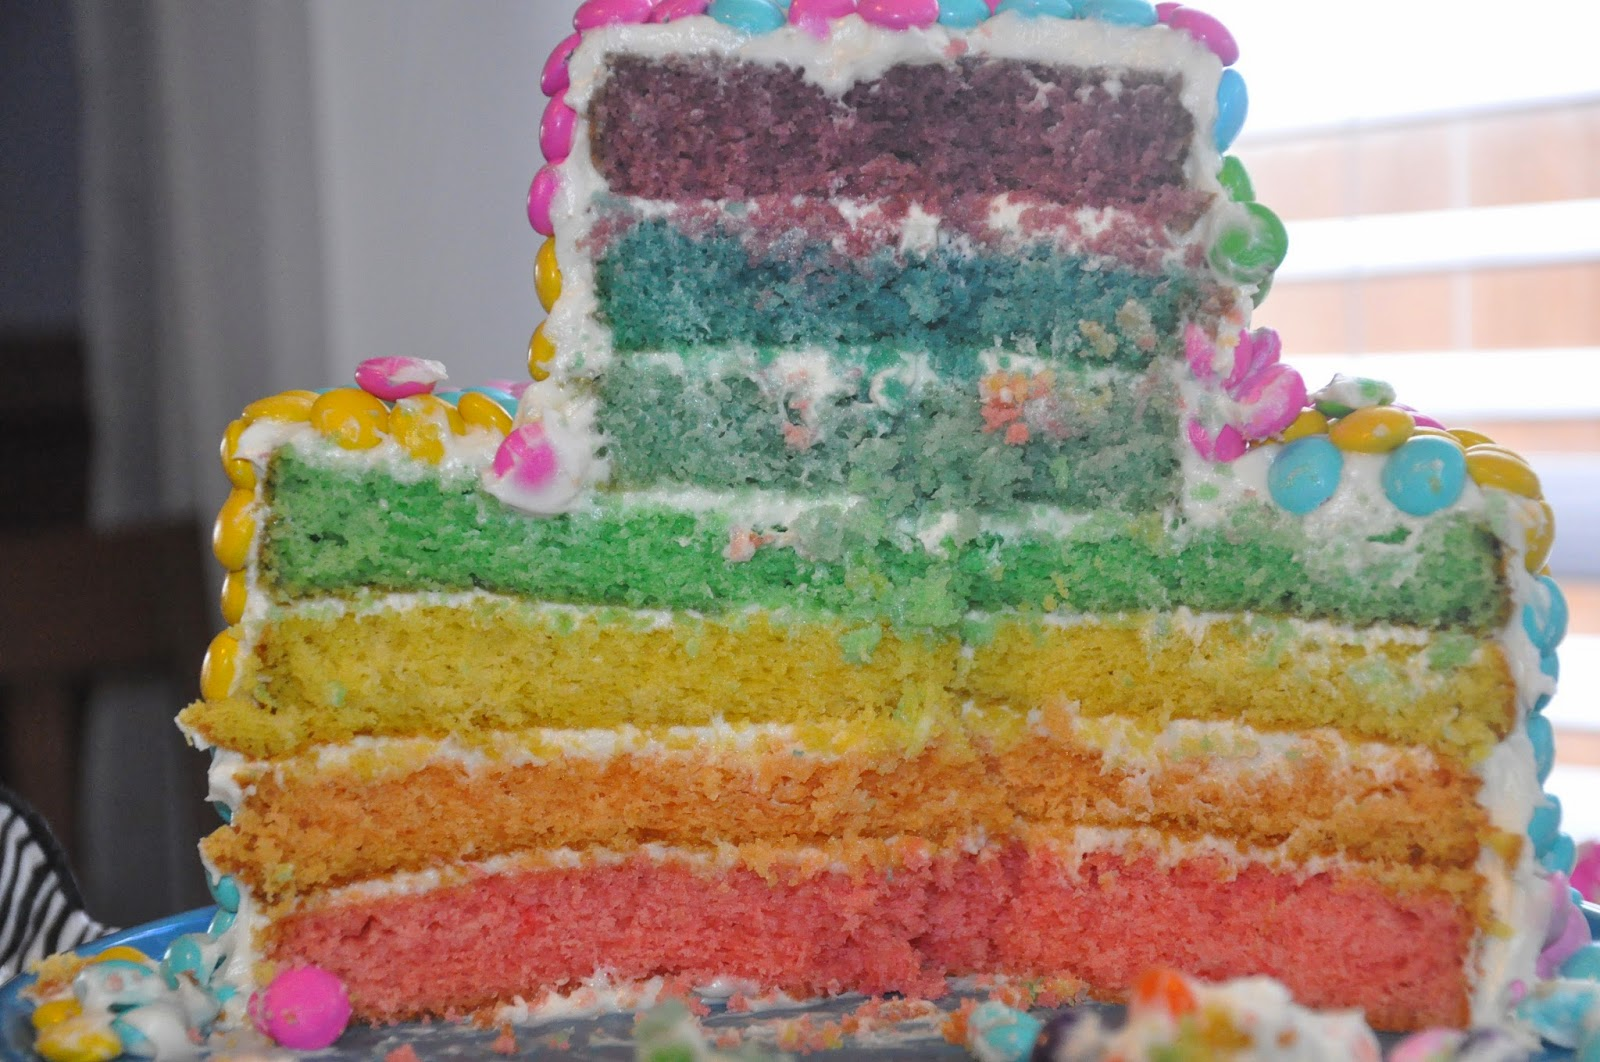 I think I could do that Rainbow MM Birthday Cake